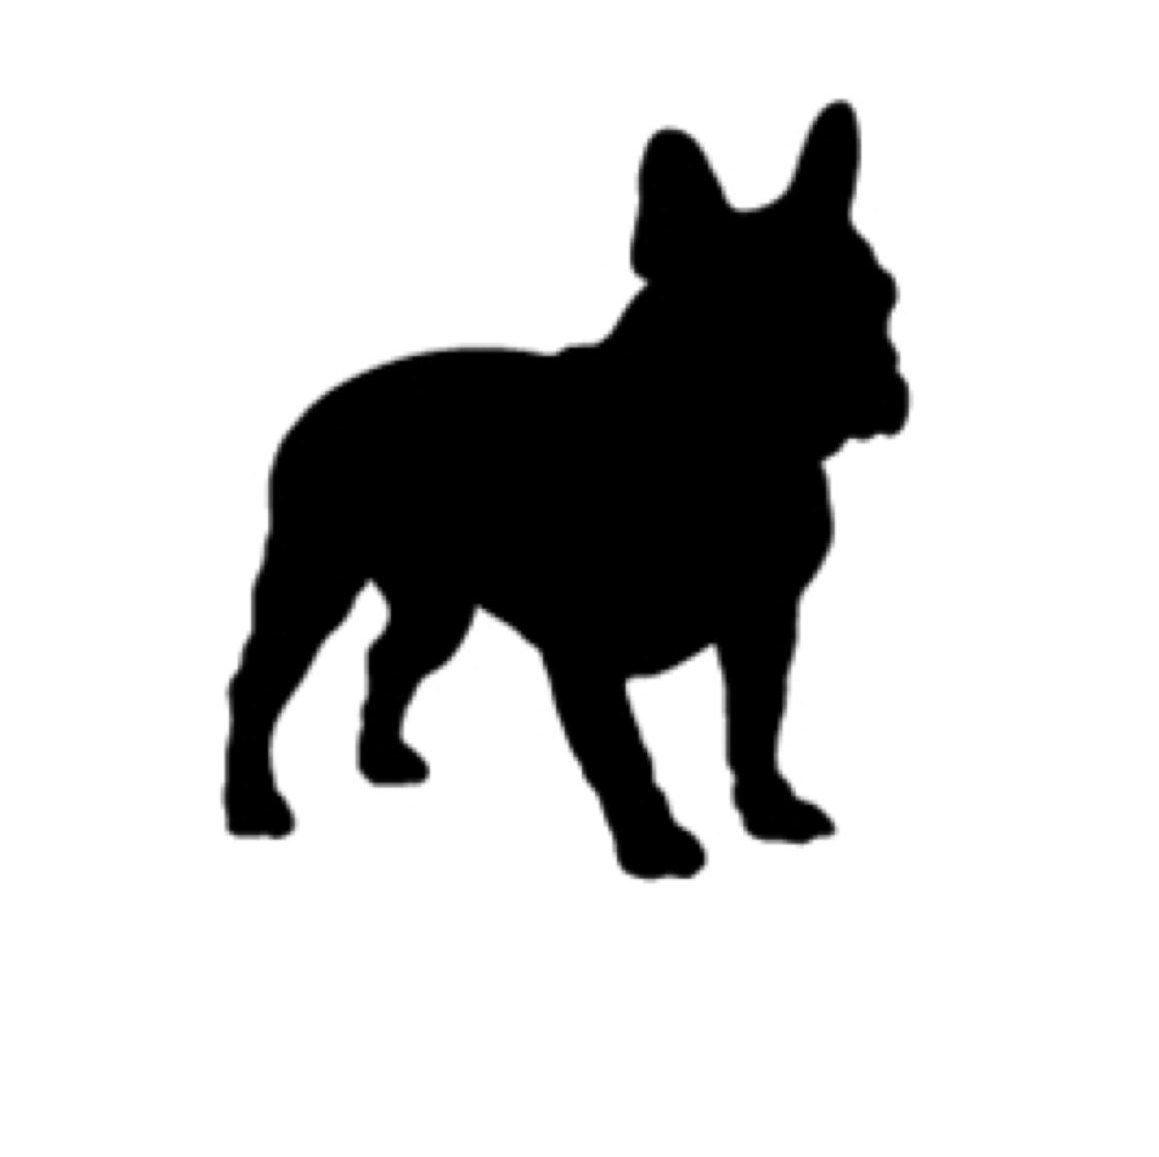 Boston Terrier Stencil Made From 4 Ply Mat Board